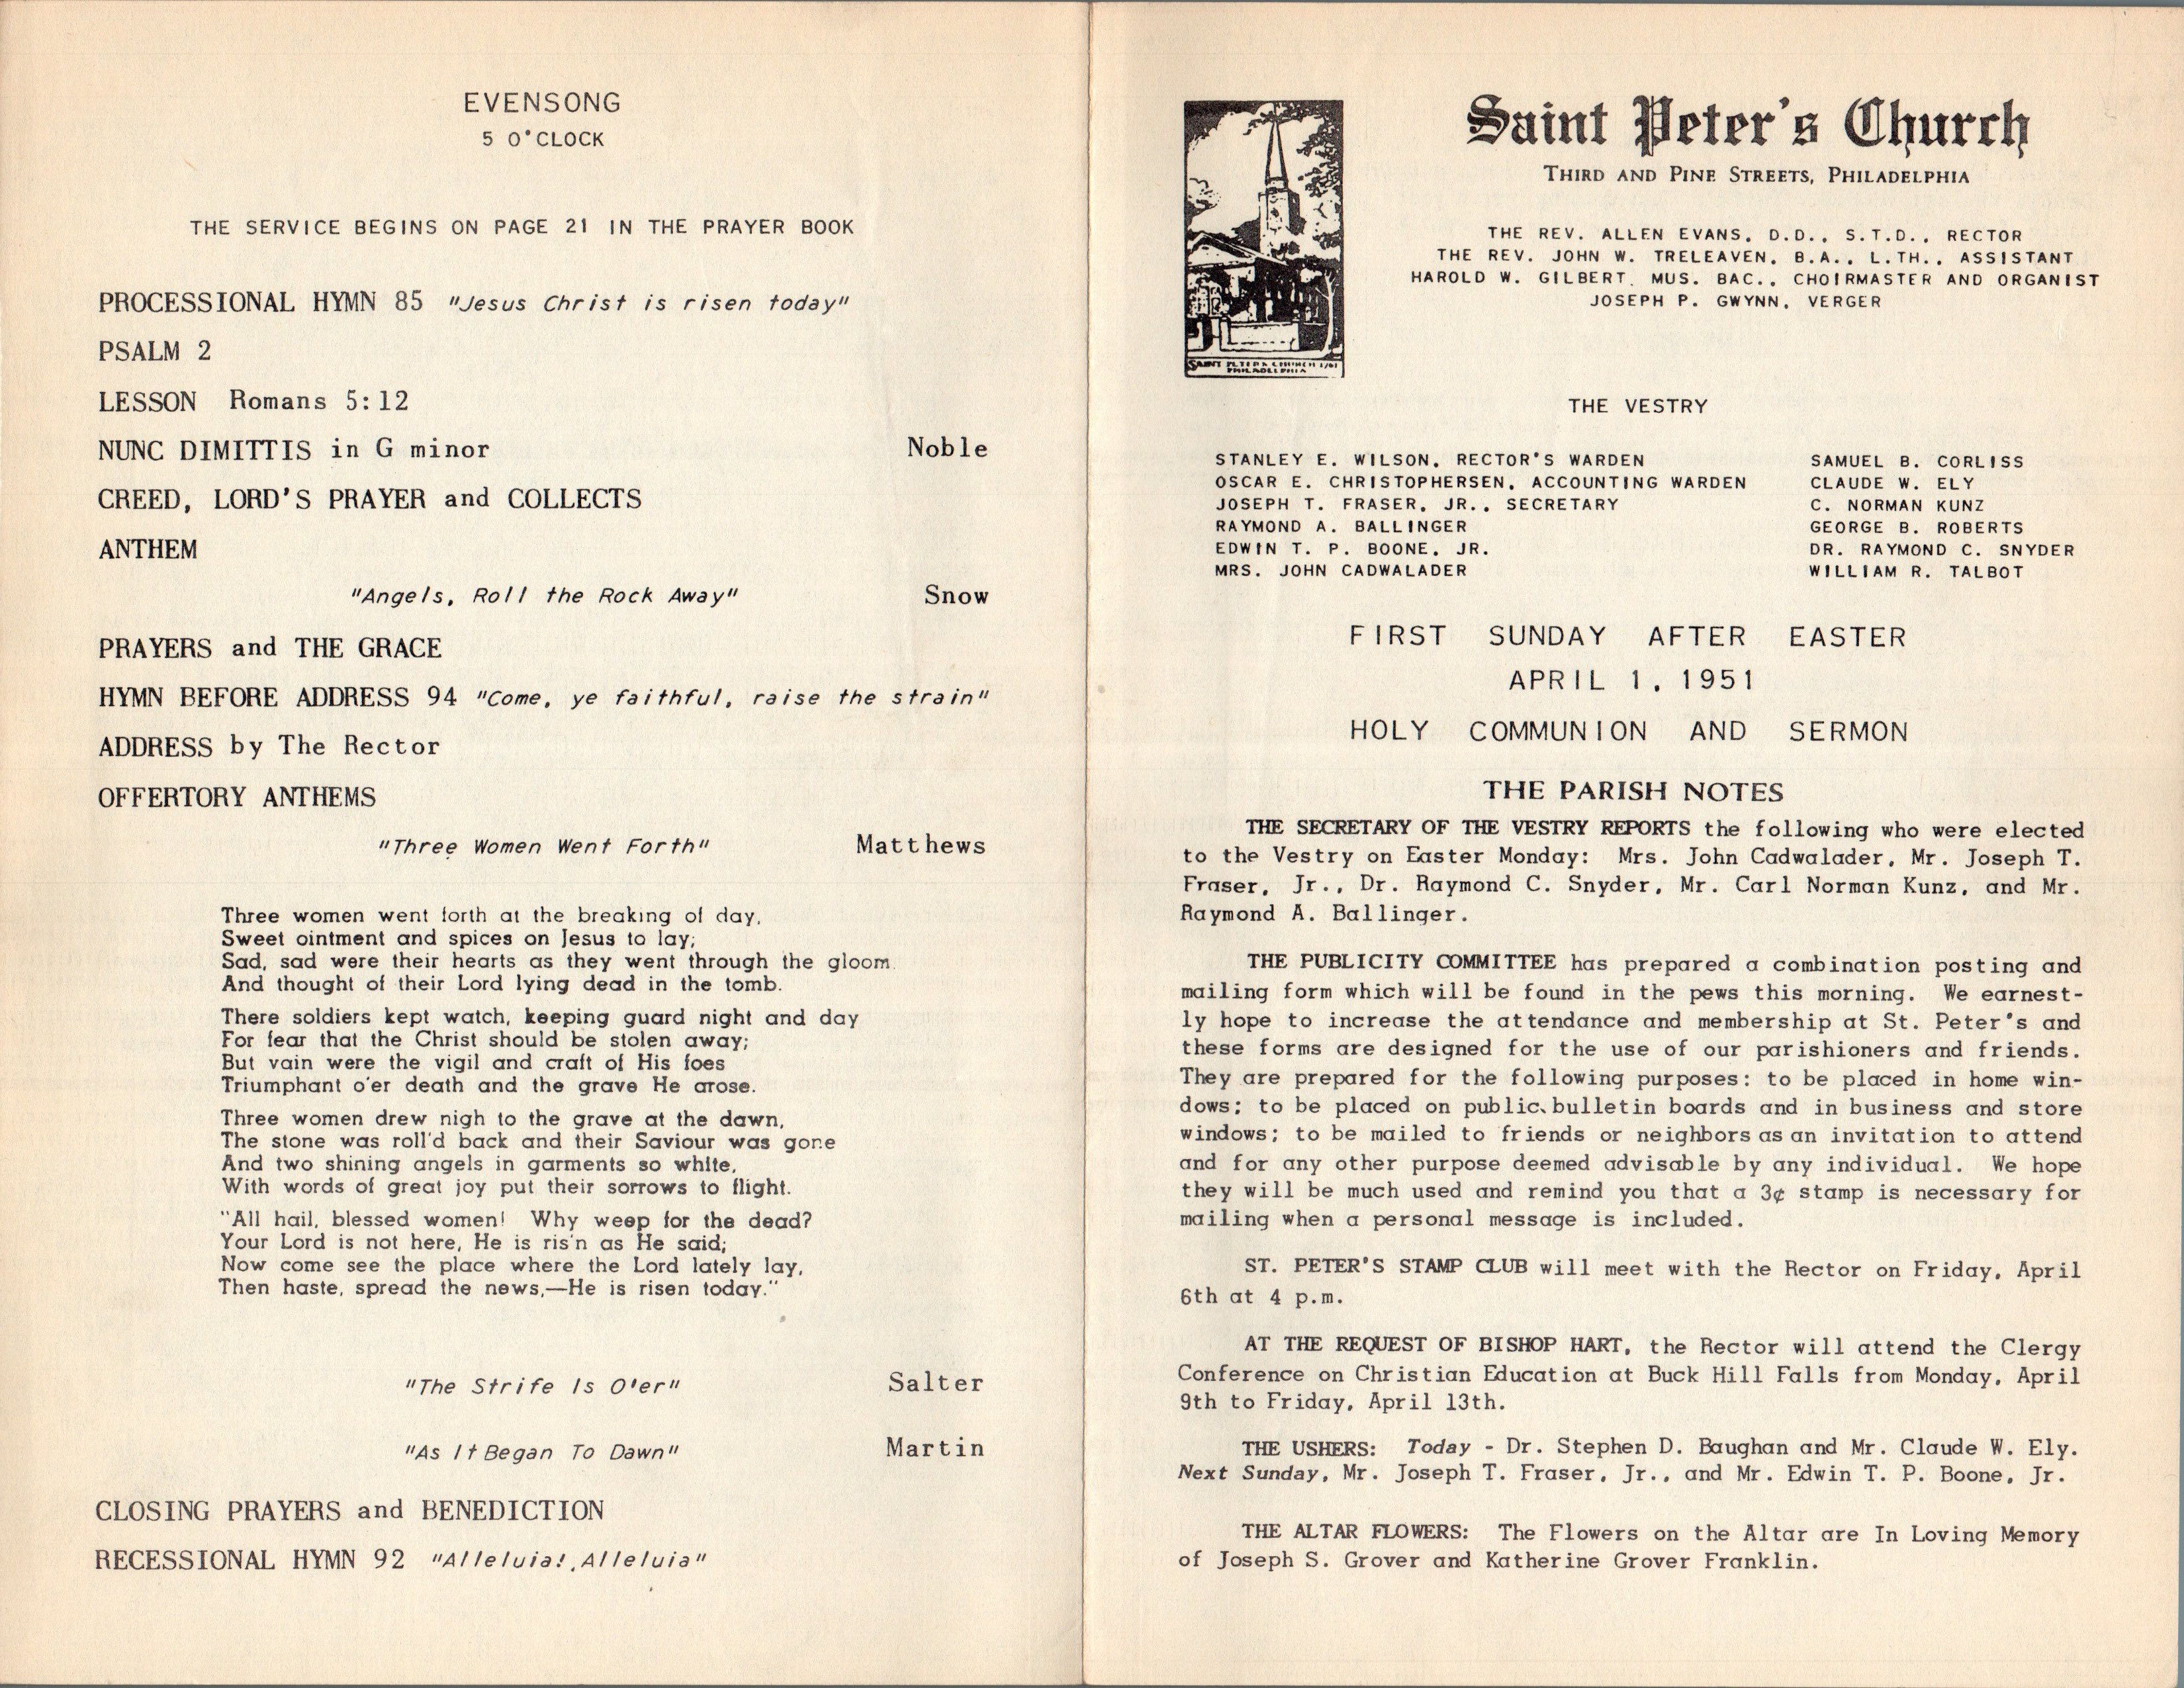 Service Leaflet for the First Sunday after Easter at St. Peter's Church,  Philadelphia (1951)